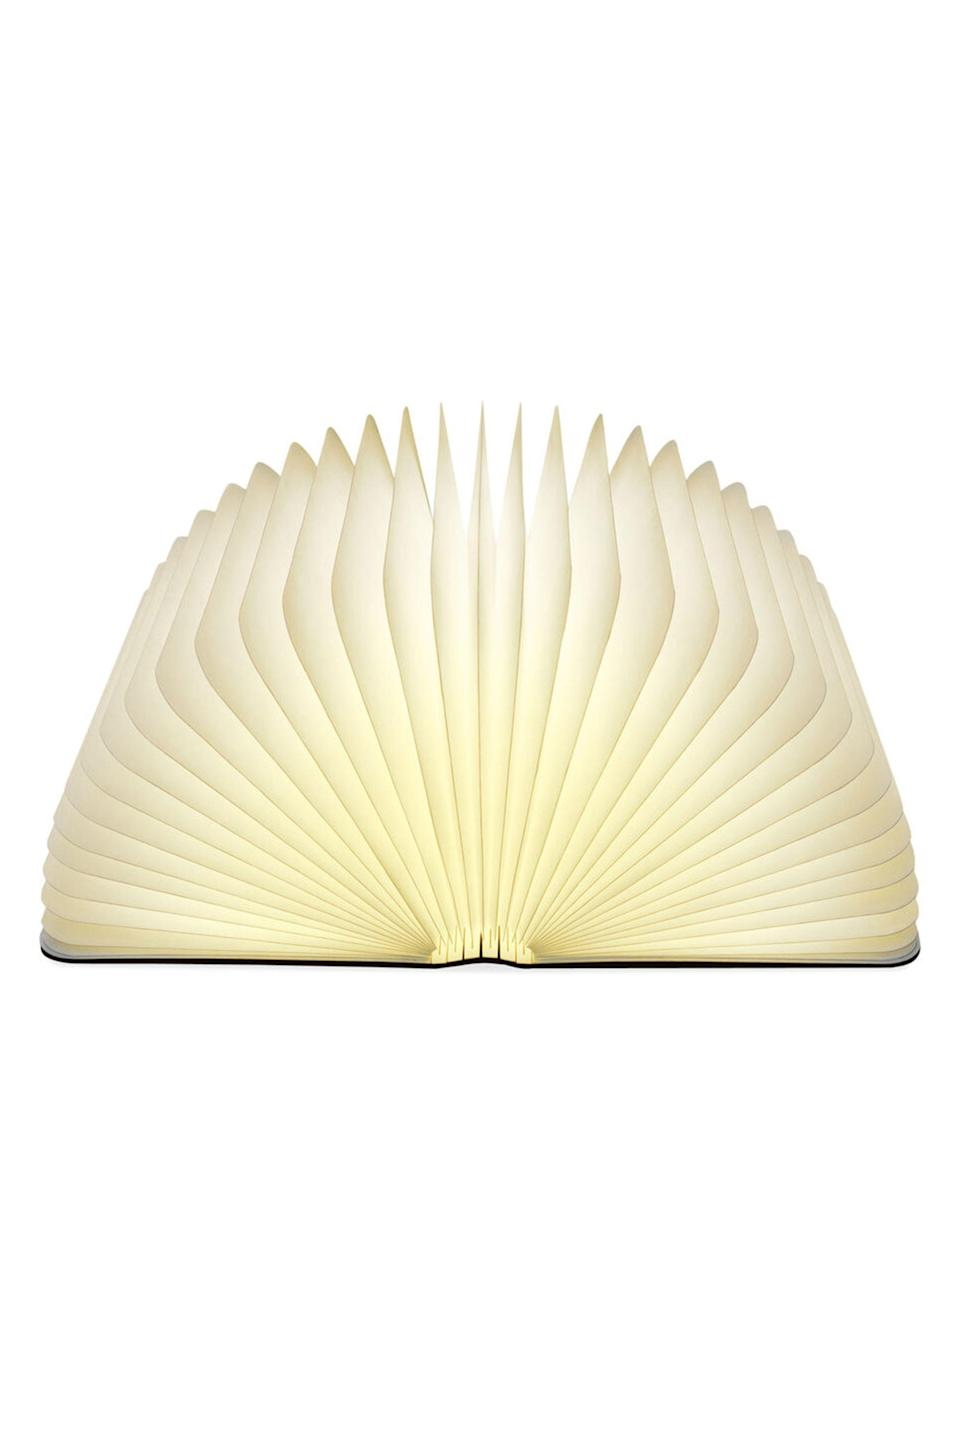 """<p>moma.org</p><p><strong>$200.00</strong></p><p><a href=""""https://store.moma.org/for-the-home/home/lighting/table-lamps/lumio-book-lamp/v105016-105016.html"""" rel=""""nofollow noopener"""" target=""""_blank"""" data-ylk=""""slk:Shop Now"""" class=""""link rapid-noclick-resp"""">Shop Now</a></p><p>If their decor taste is a bit literal. </p>"""